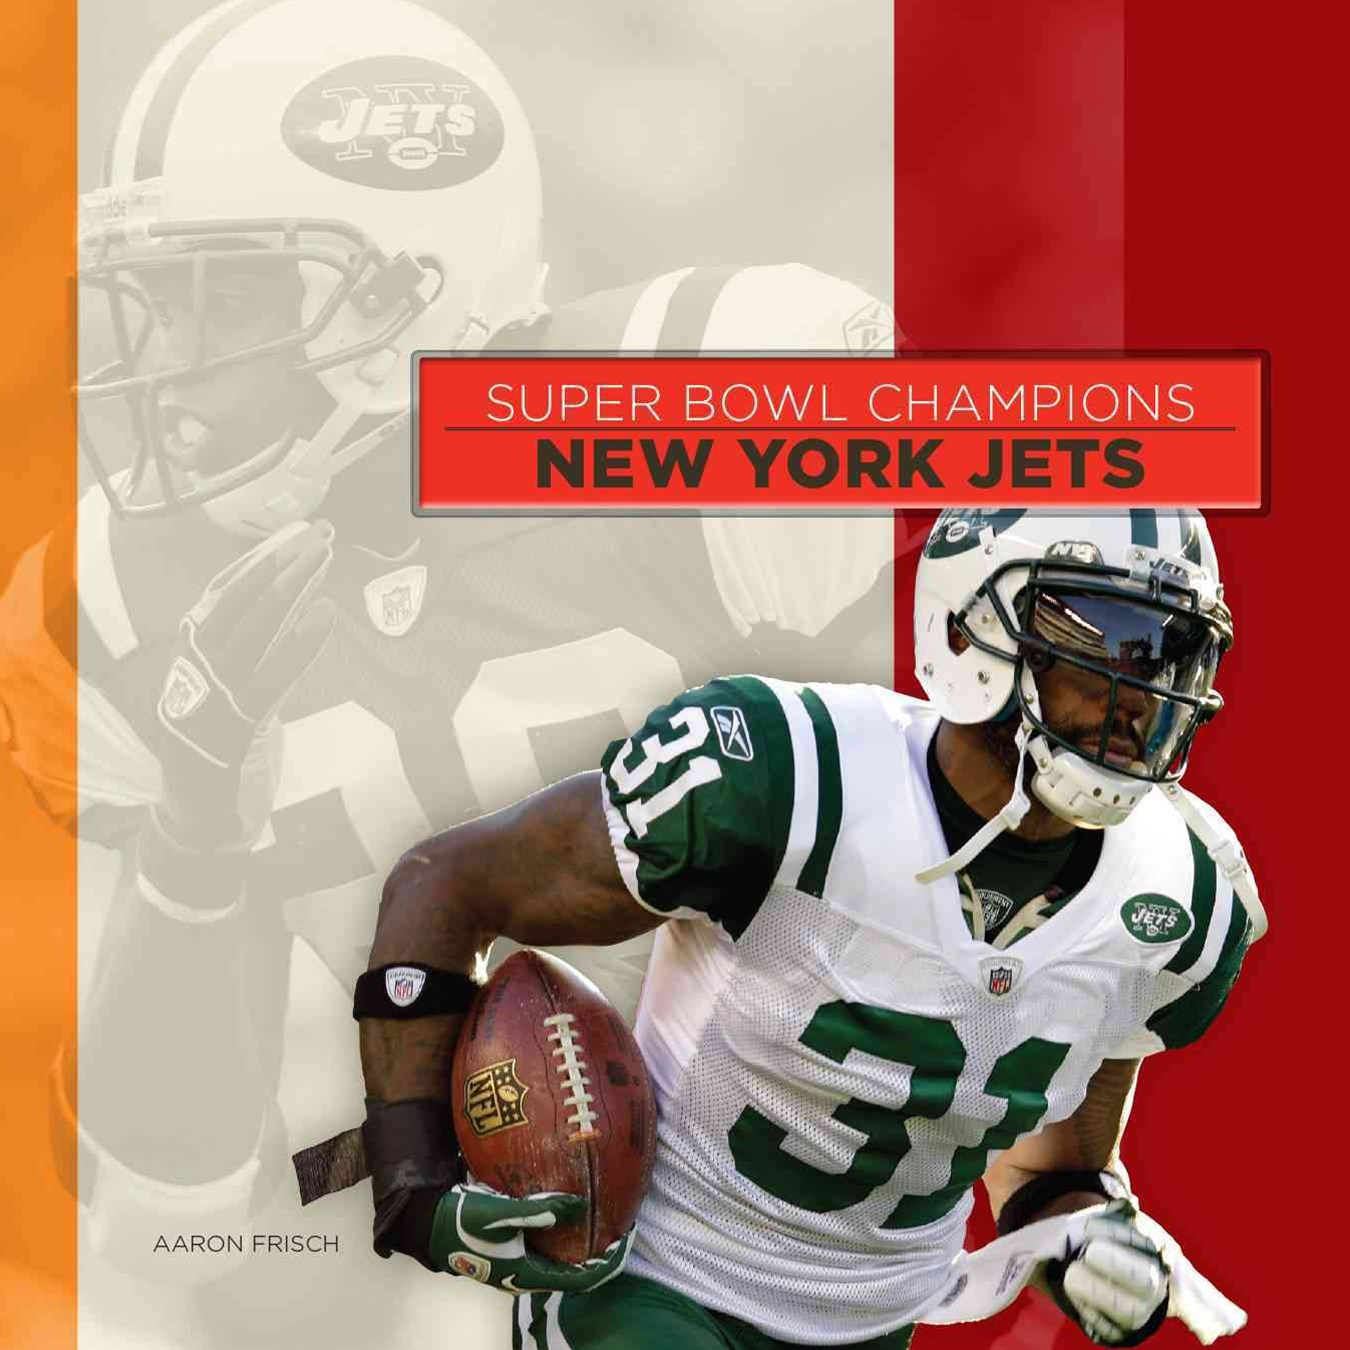 Super Bowl Champions: New York Jets